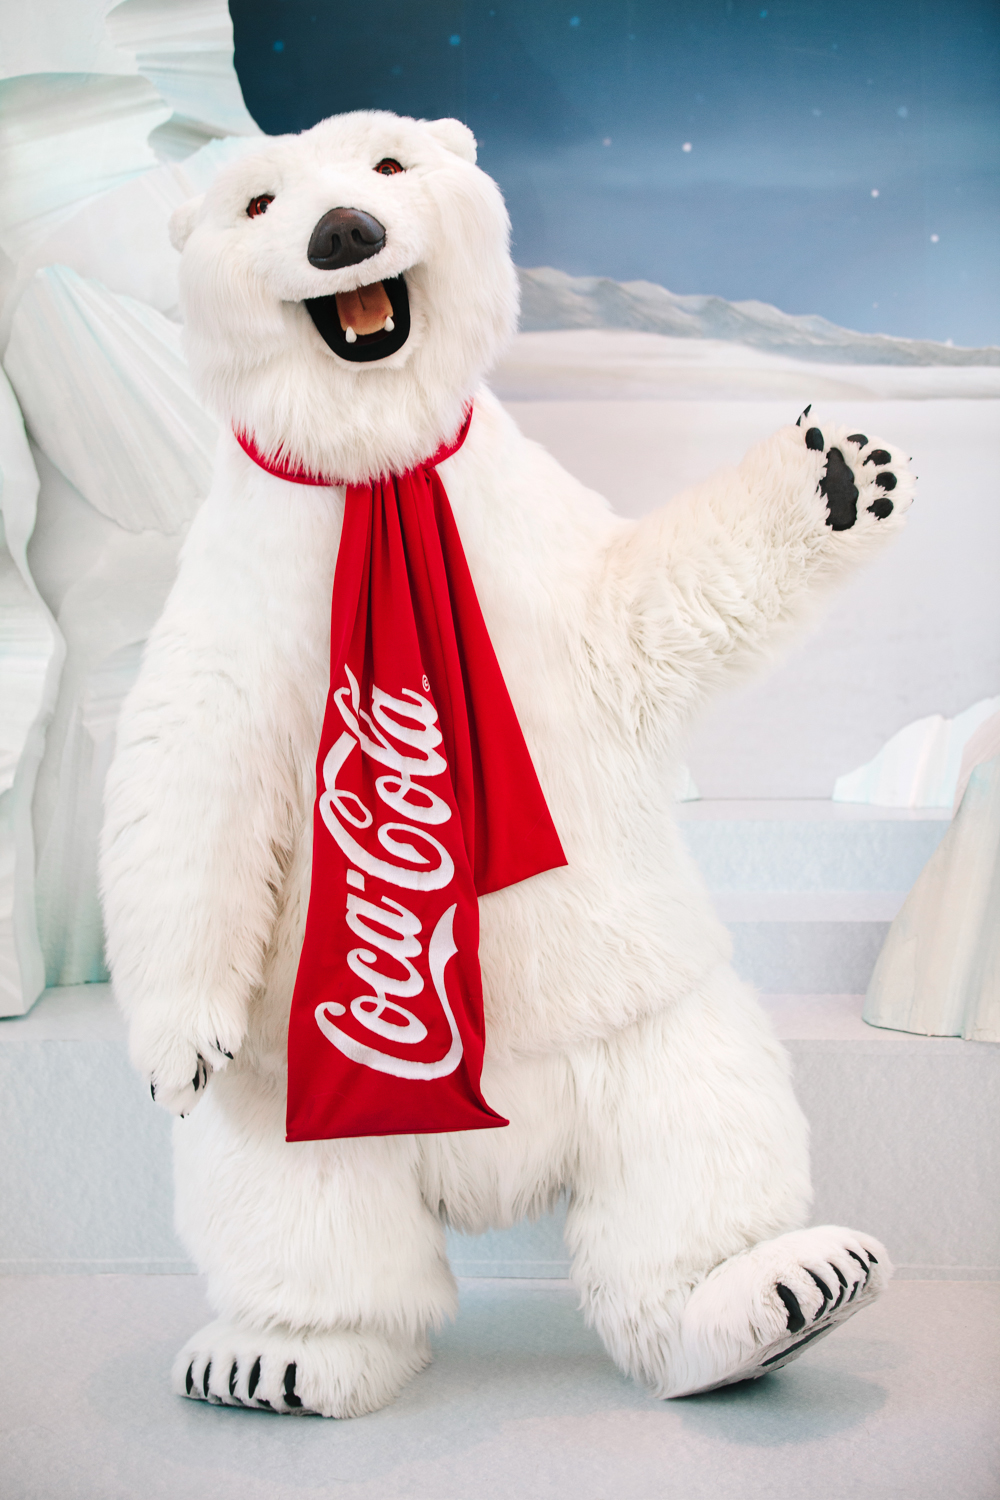 Top 10 Ways to Celebrate the Holidays at the World of Coca-Cola